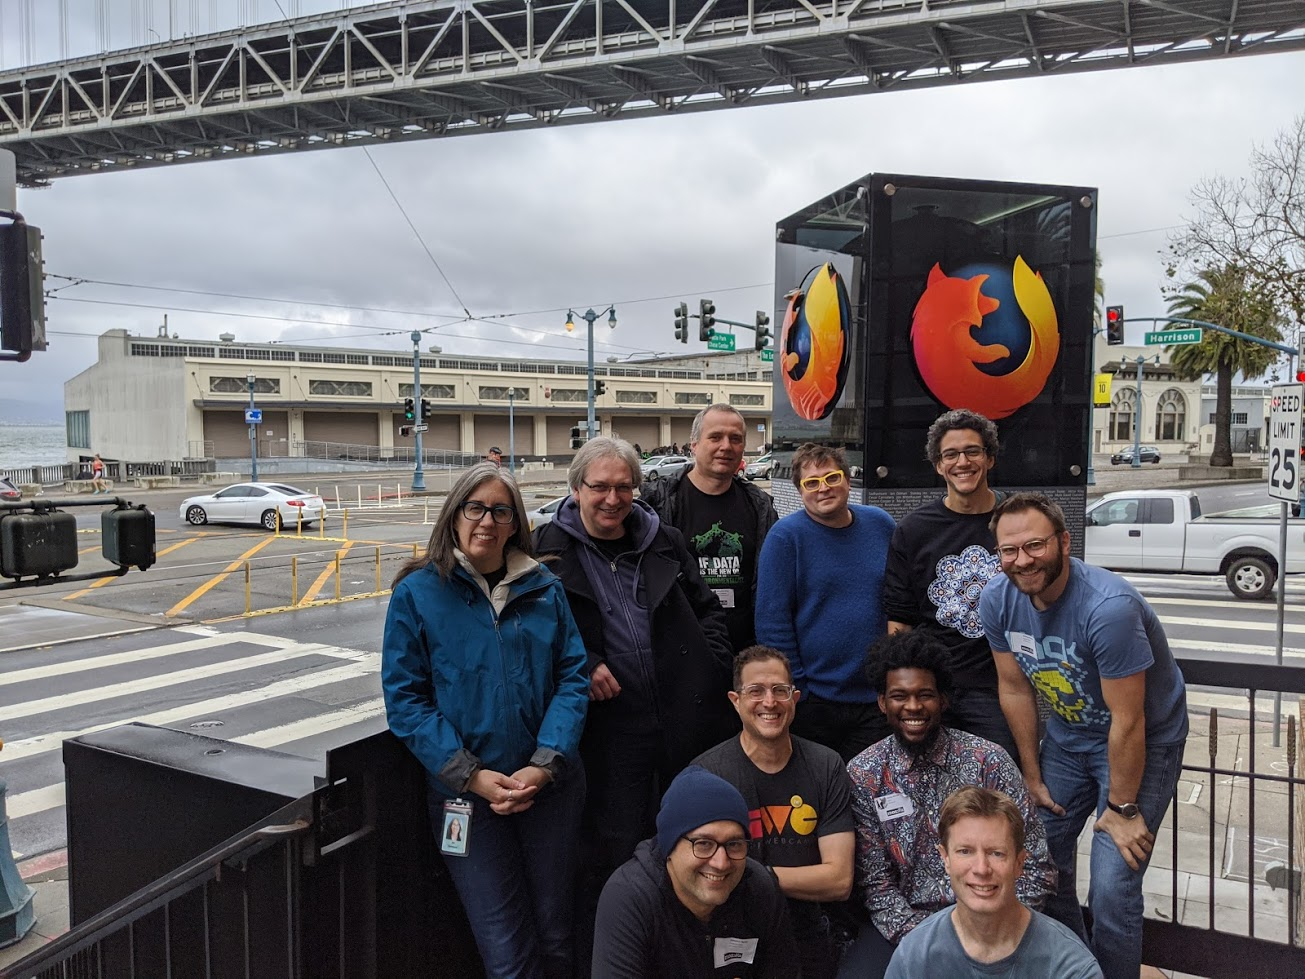 IndieWebCamp San Francisco 2019 Day 1 participants gathered in front of the Firefox tower just outside of Mozilla's San Francisco offices, with Embarcadero and Harrison streets behind them and a span of the Bay Bridge just visible at the top of the photo.